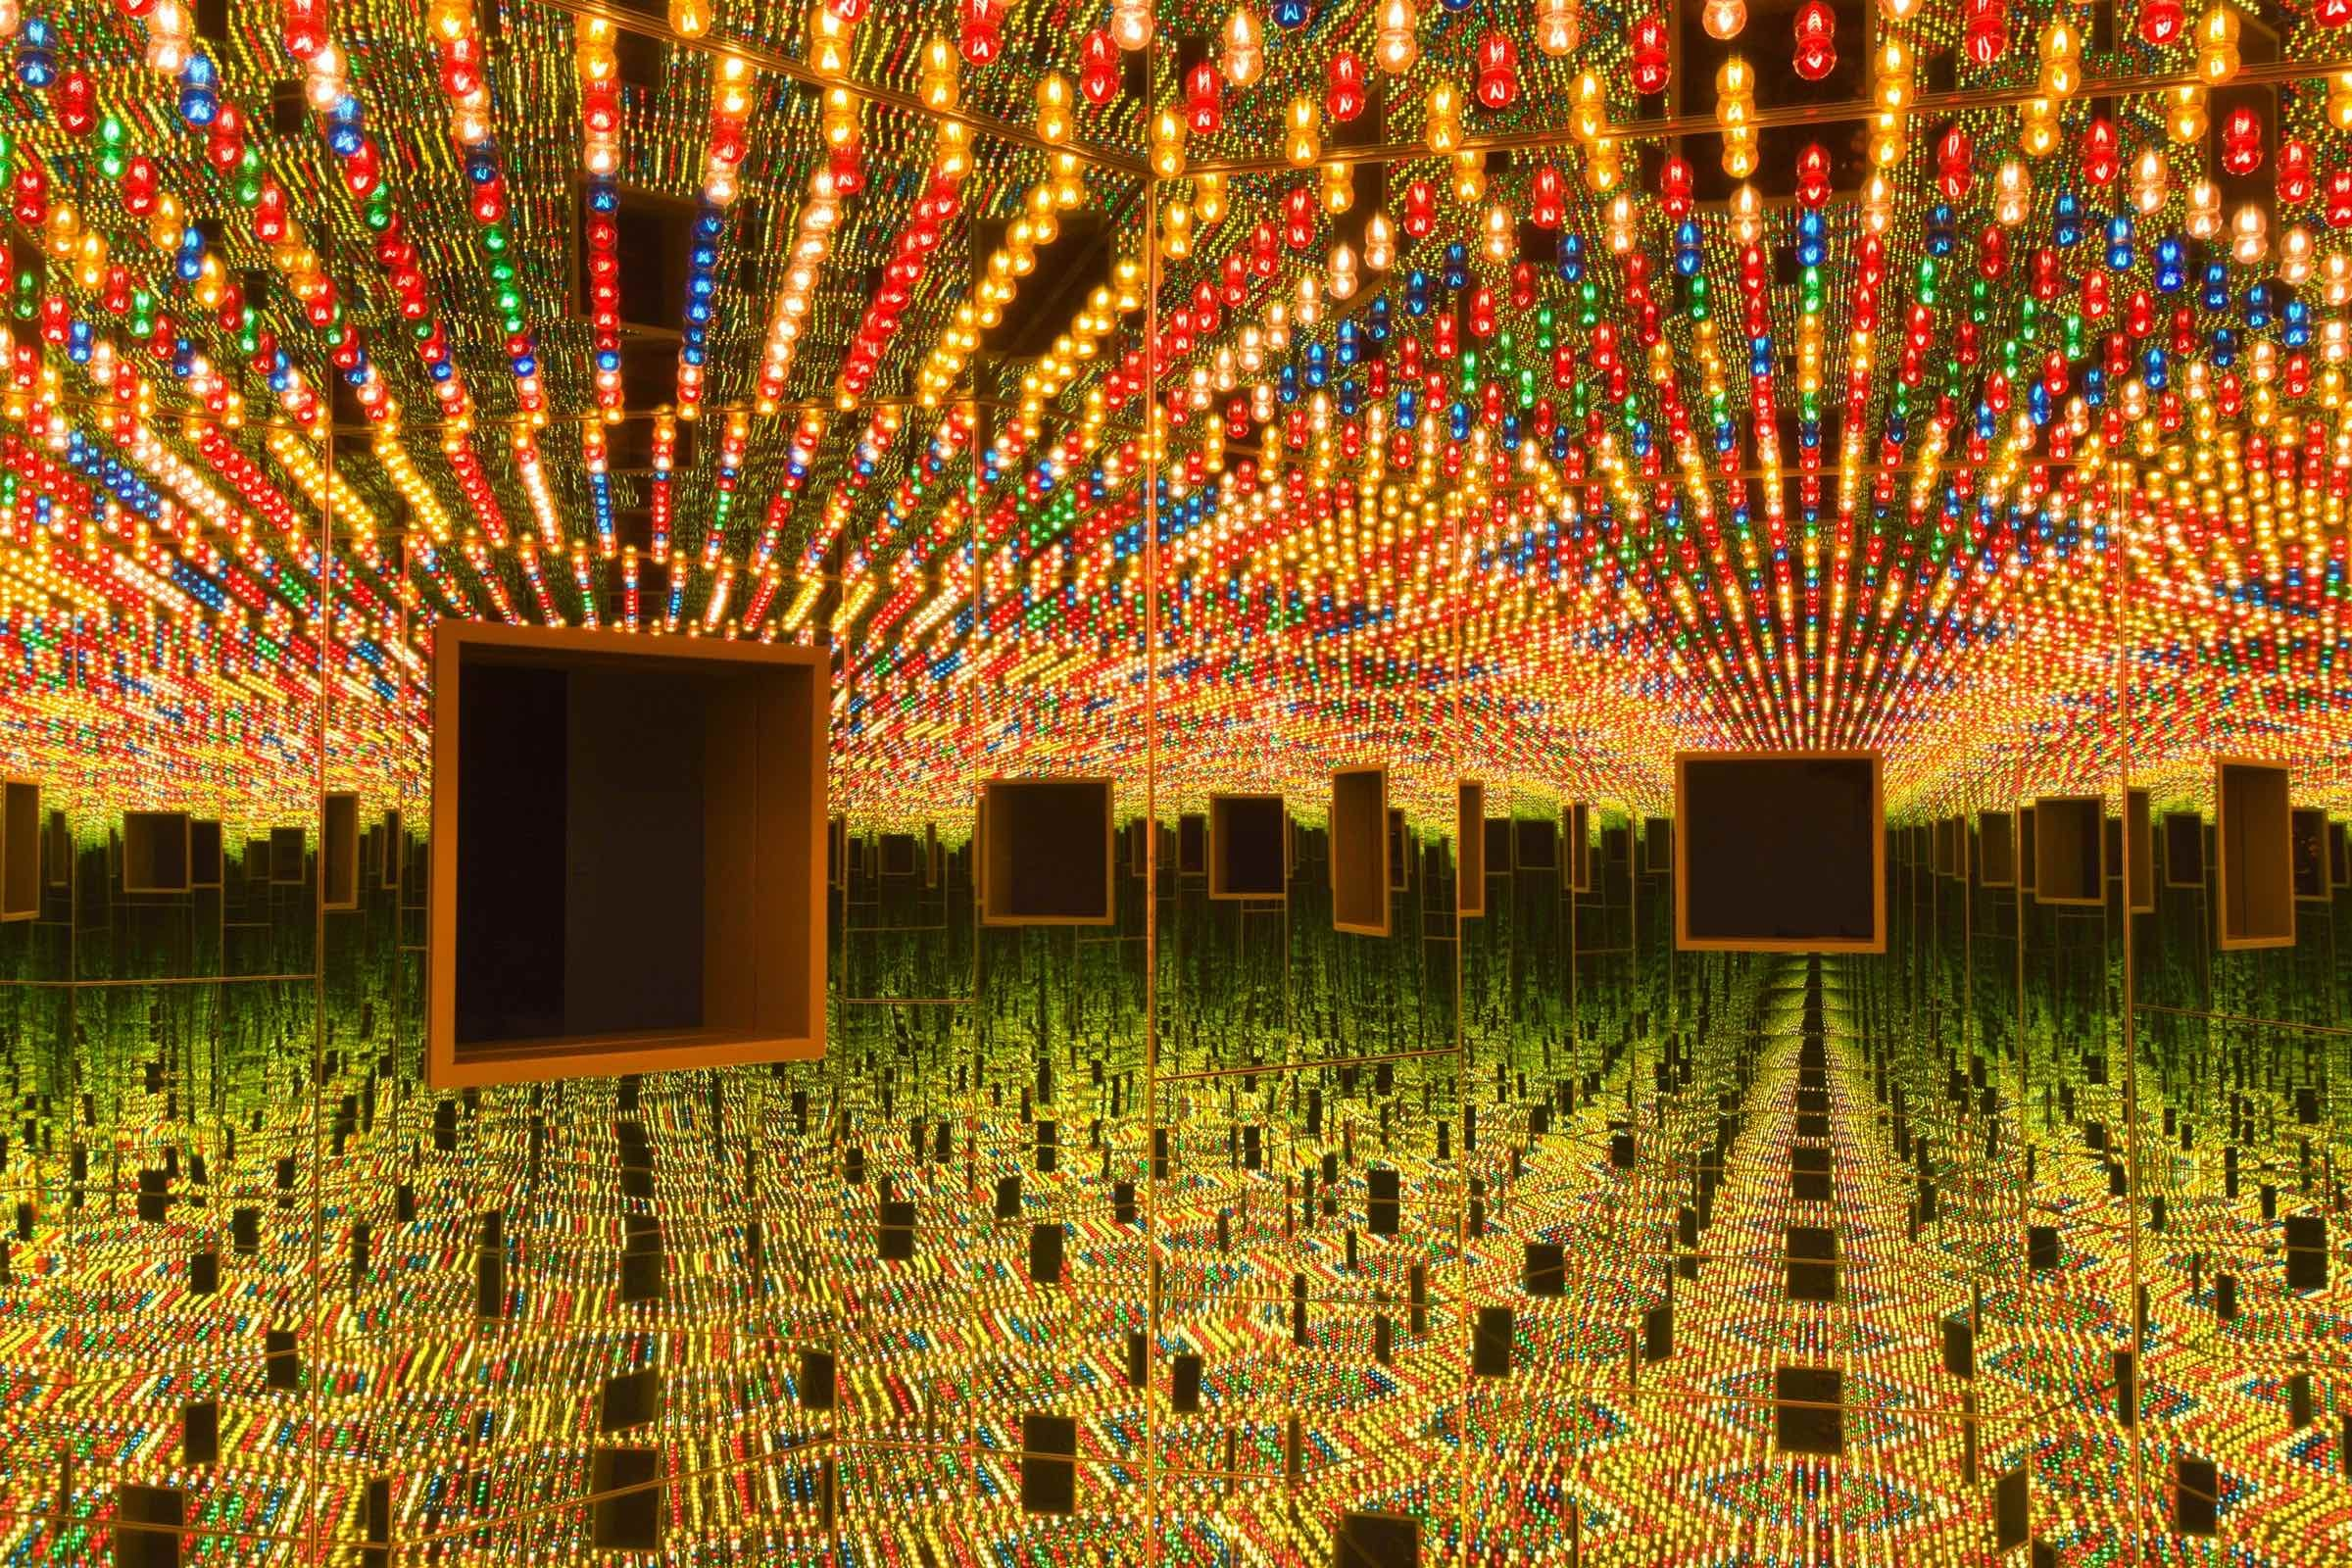 Yayoi Kusama. Infinity Mirrored Room – Love Forever, 1966/1994, at the Hirshhorn Museum and Sculpture Garden   © Yayoi Kusama/Photo by Cathy Carver